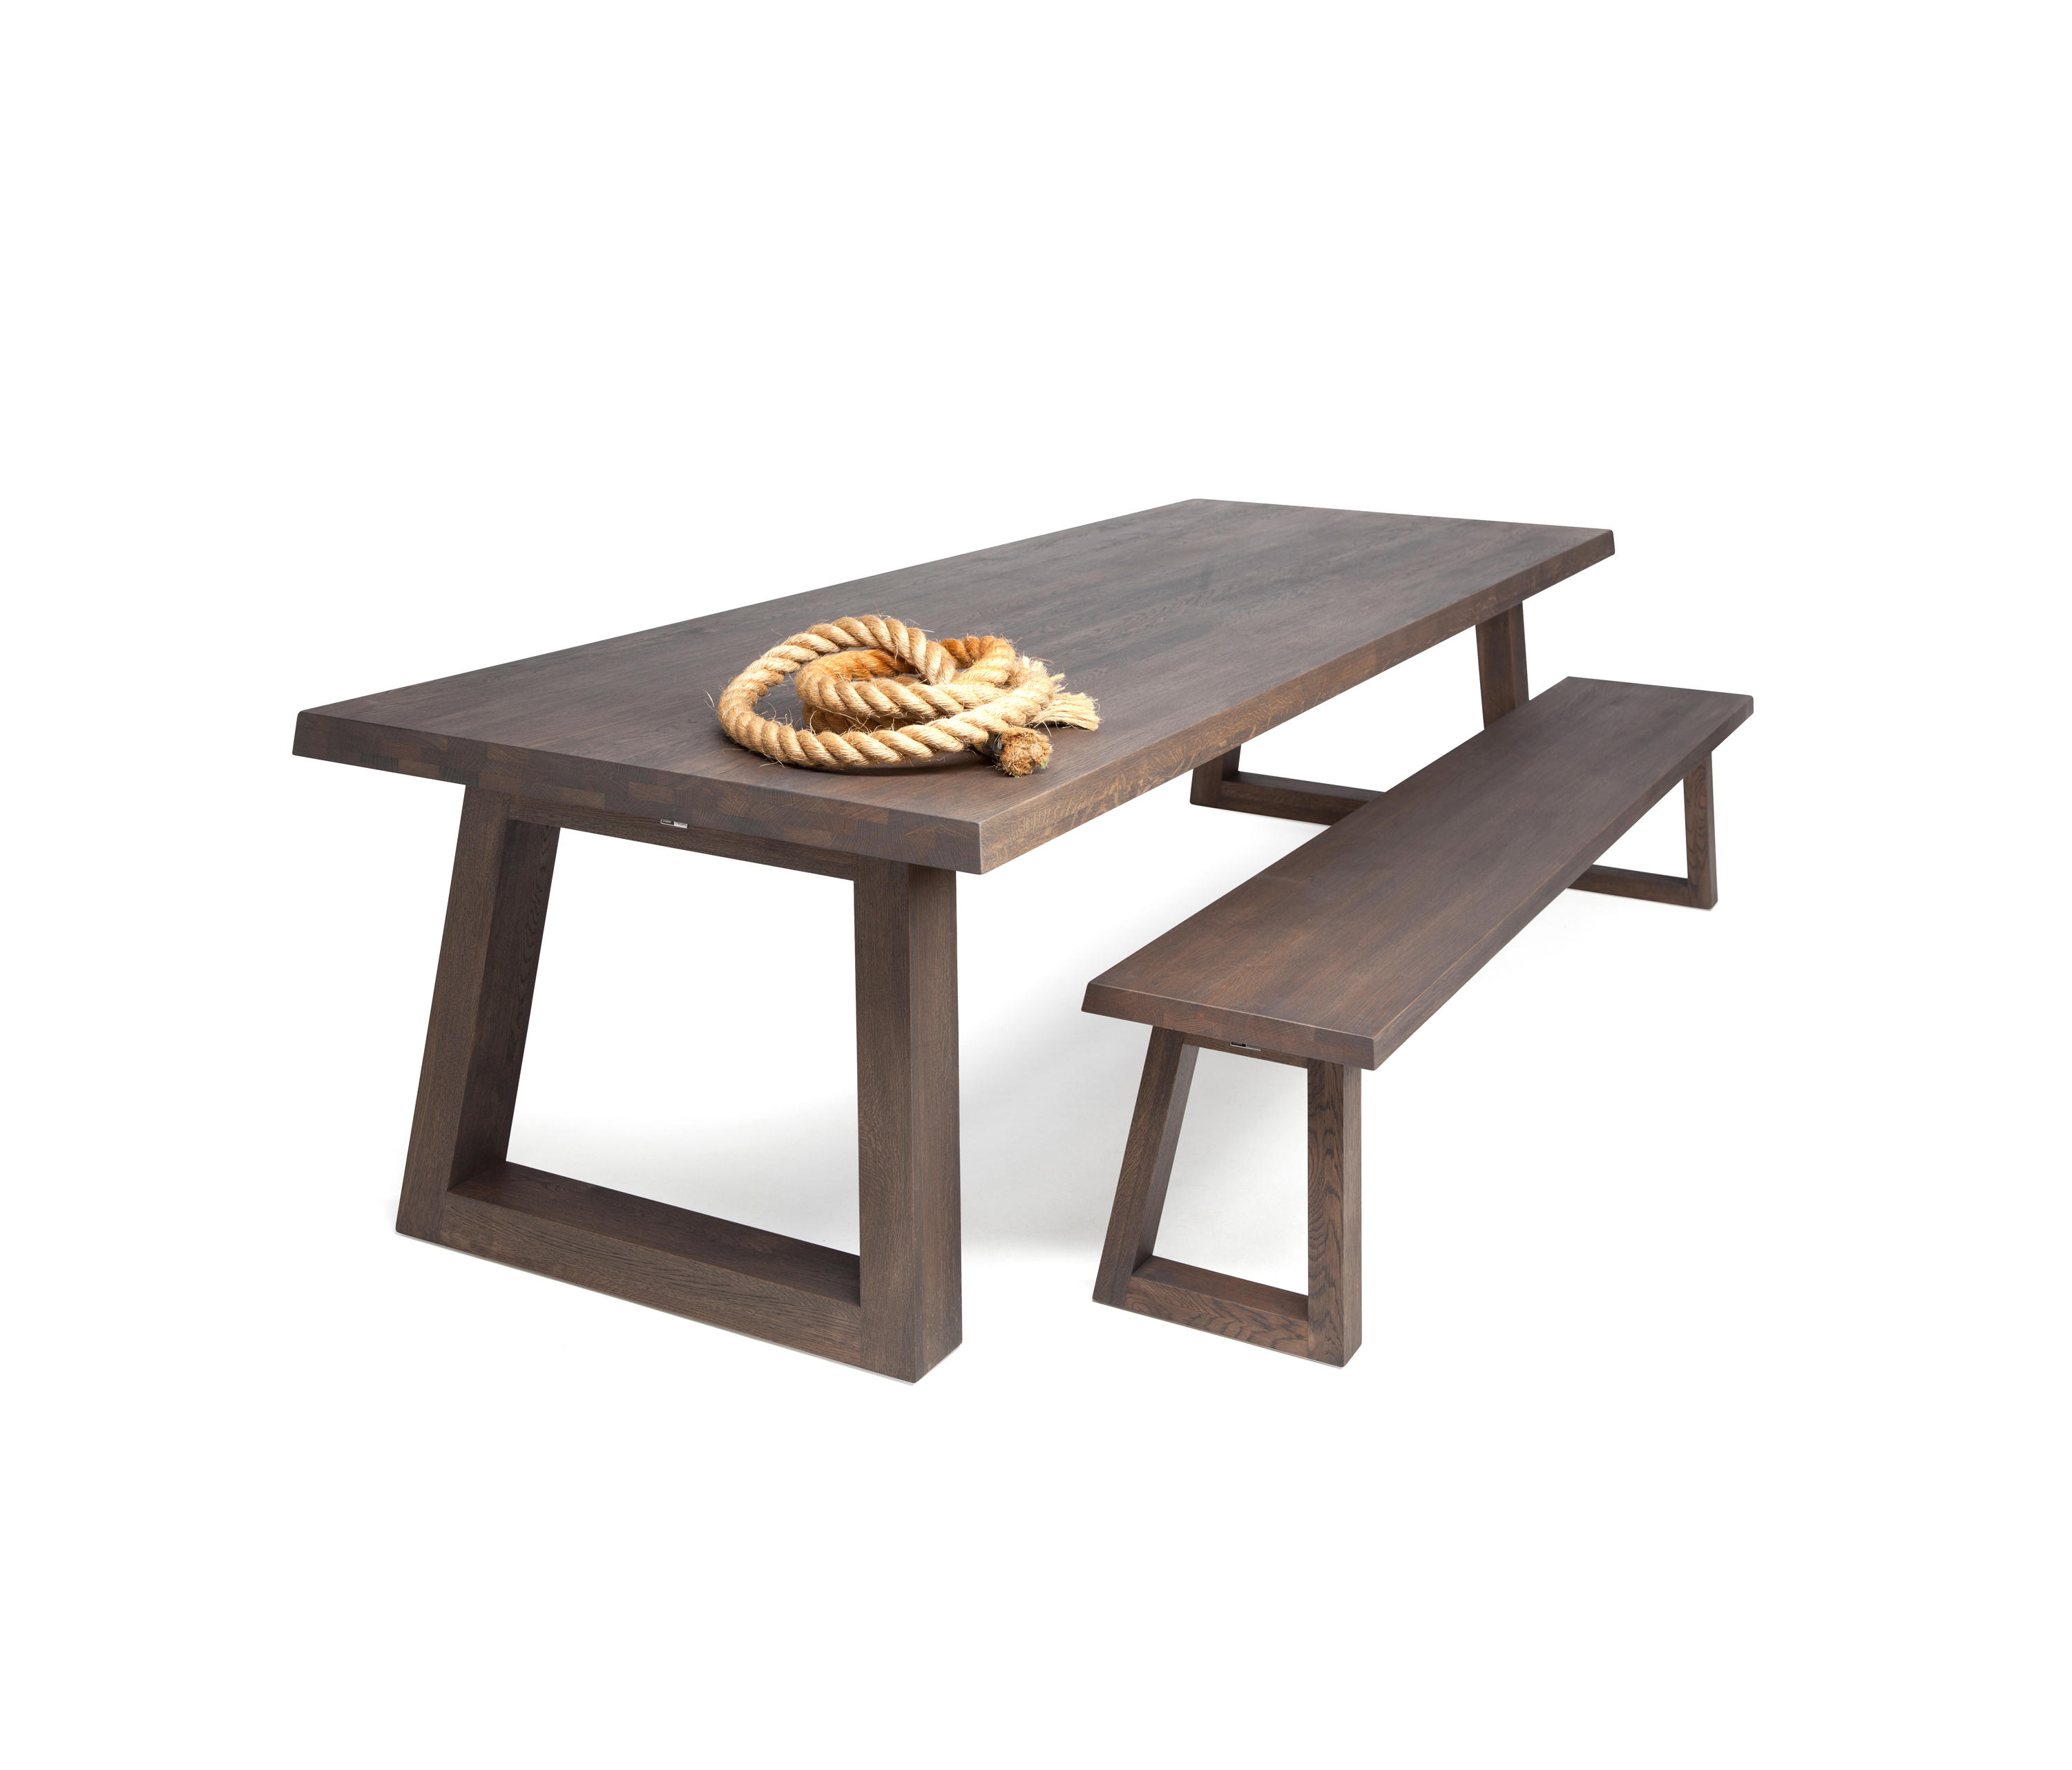 Dining Table Slides Slide Dining Table Charcoal Dining Tables From Odesi